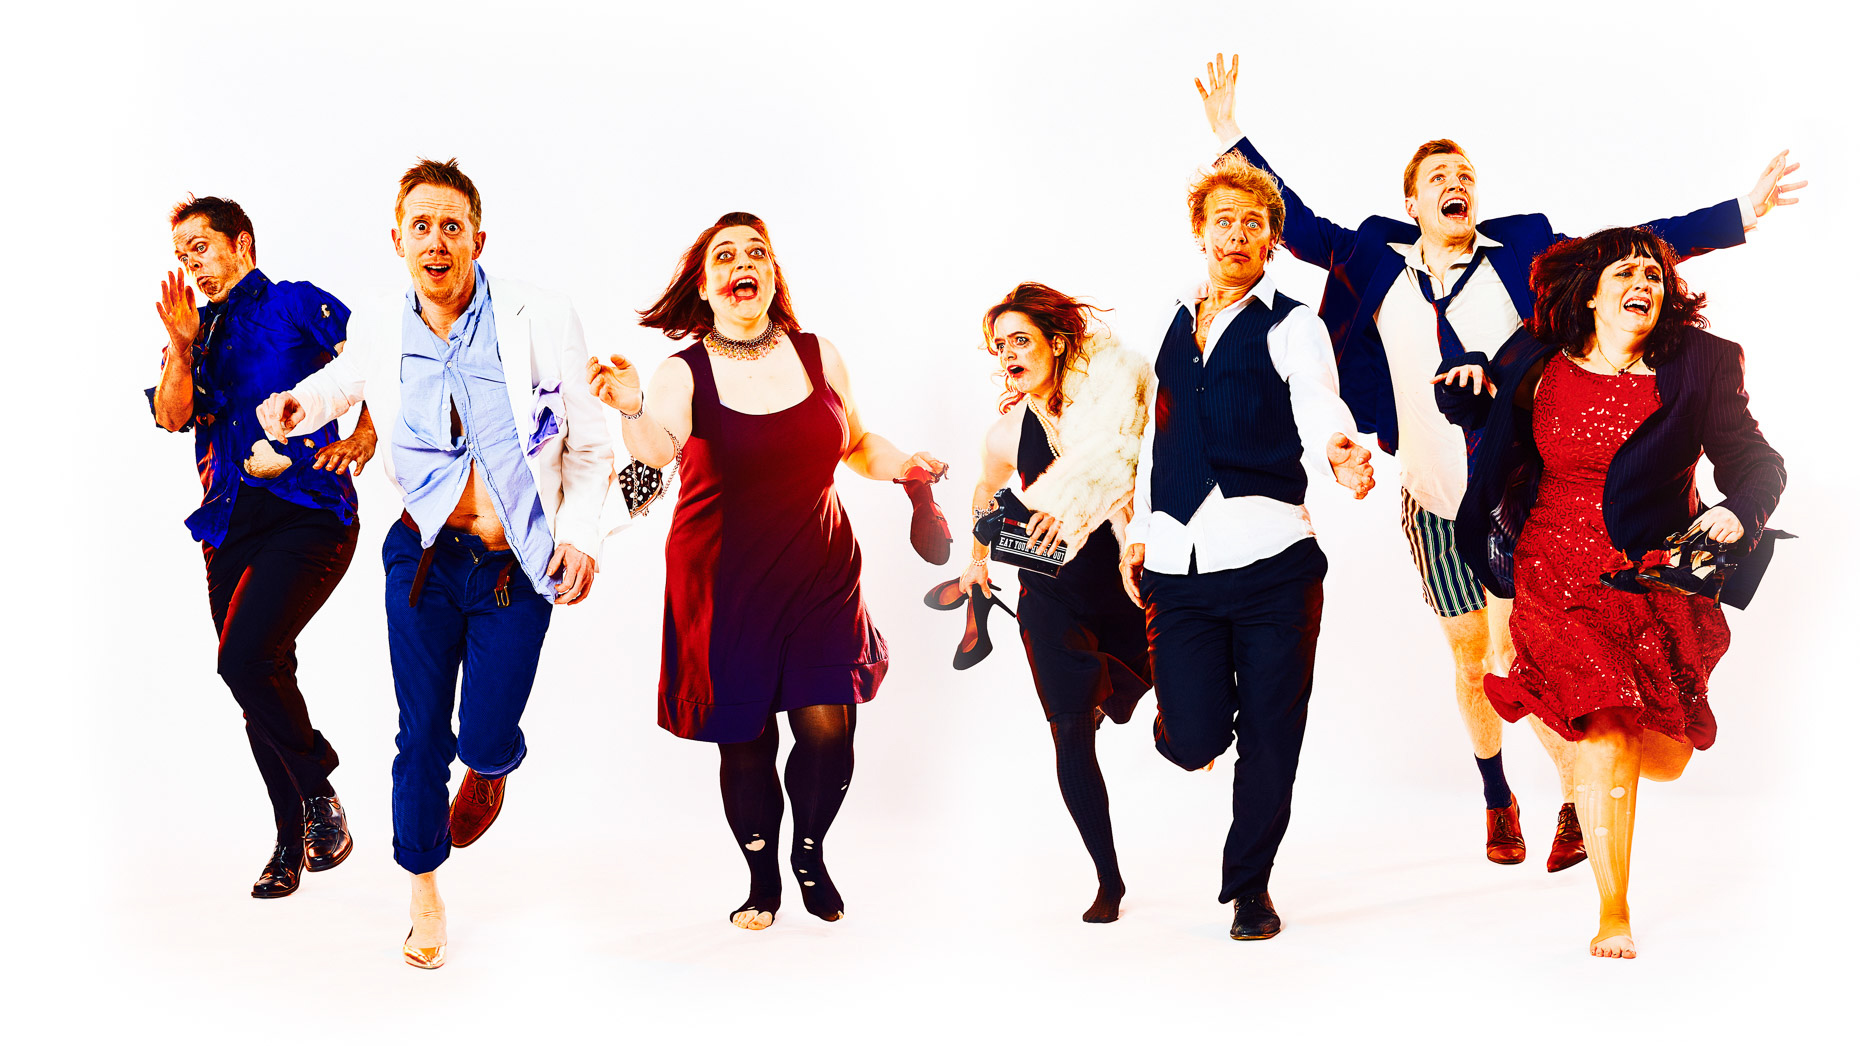 Group entertainment portrait of Improv performers Chad Parsons, Chase Padgett, Katie Beherns, Laura Sams, Matt Lask, Stacey Halall, and Tyler Quinn in Curious Comedy Theater improv Dynamite. Poster art of the 7 performers running towards camera in a white studio, wearing dissheveled party clothes from a rough night on the town. Photo by Andy Batt